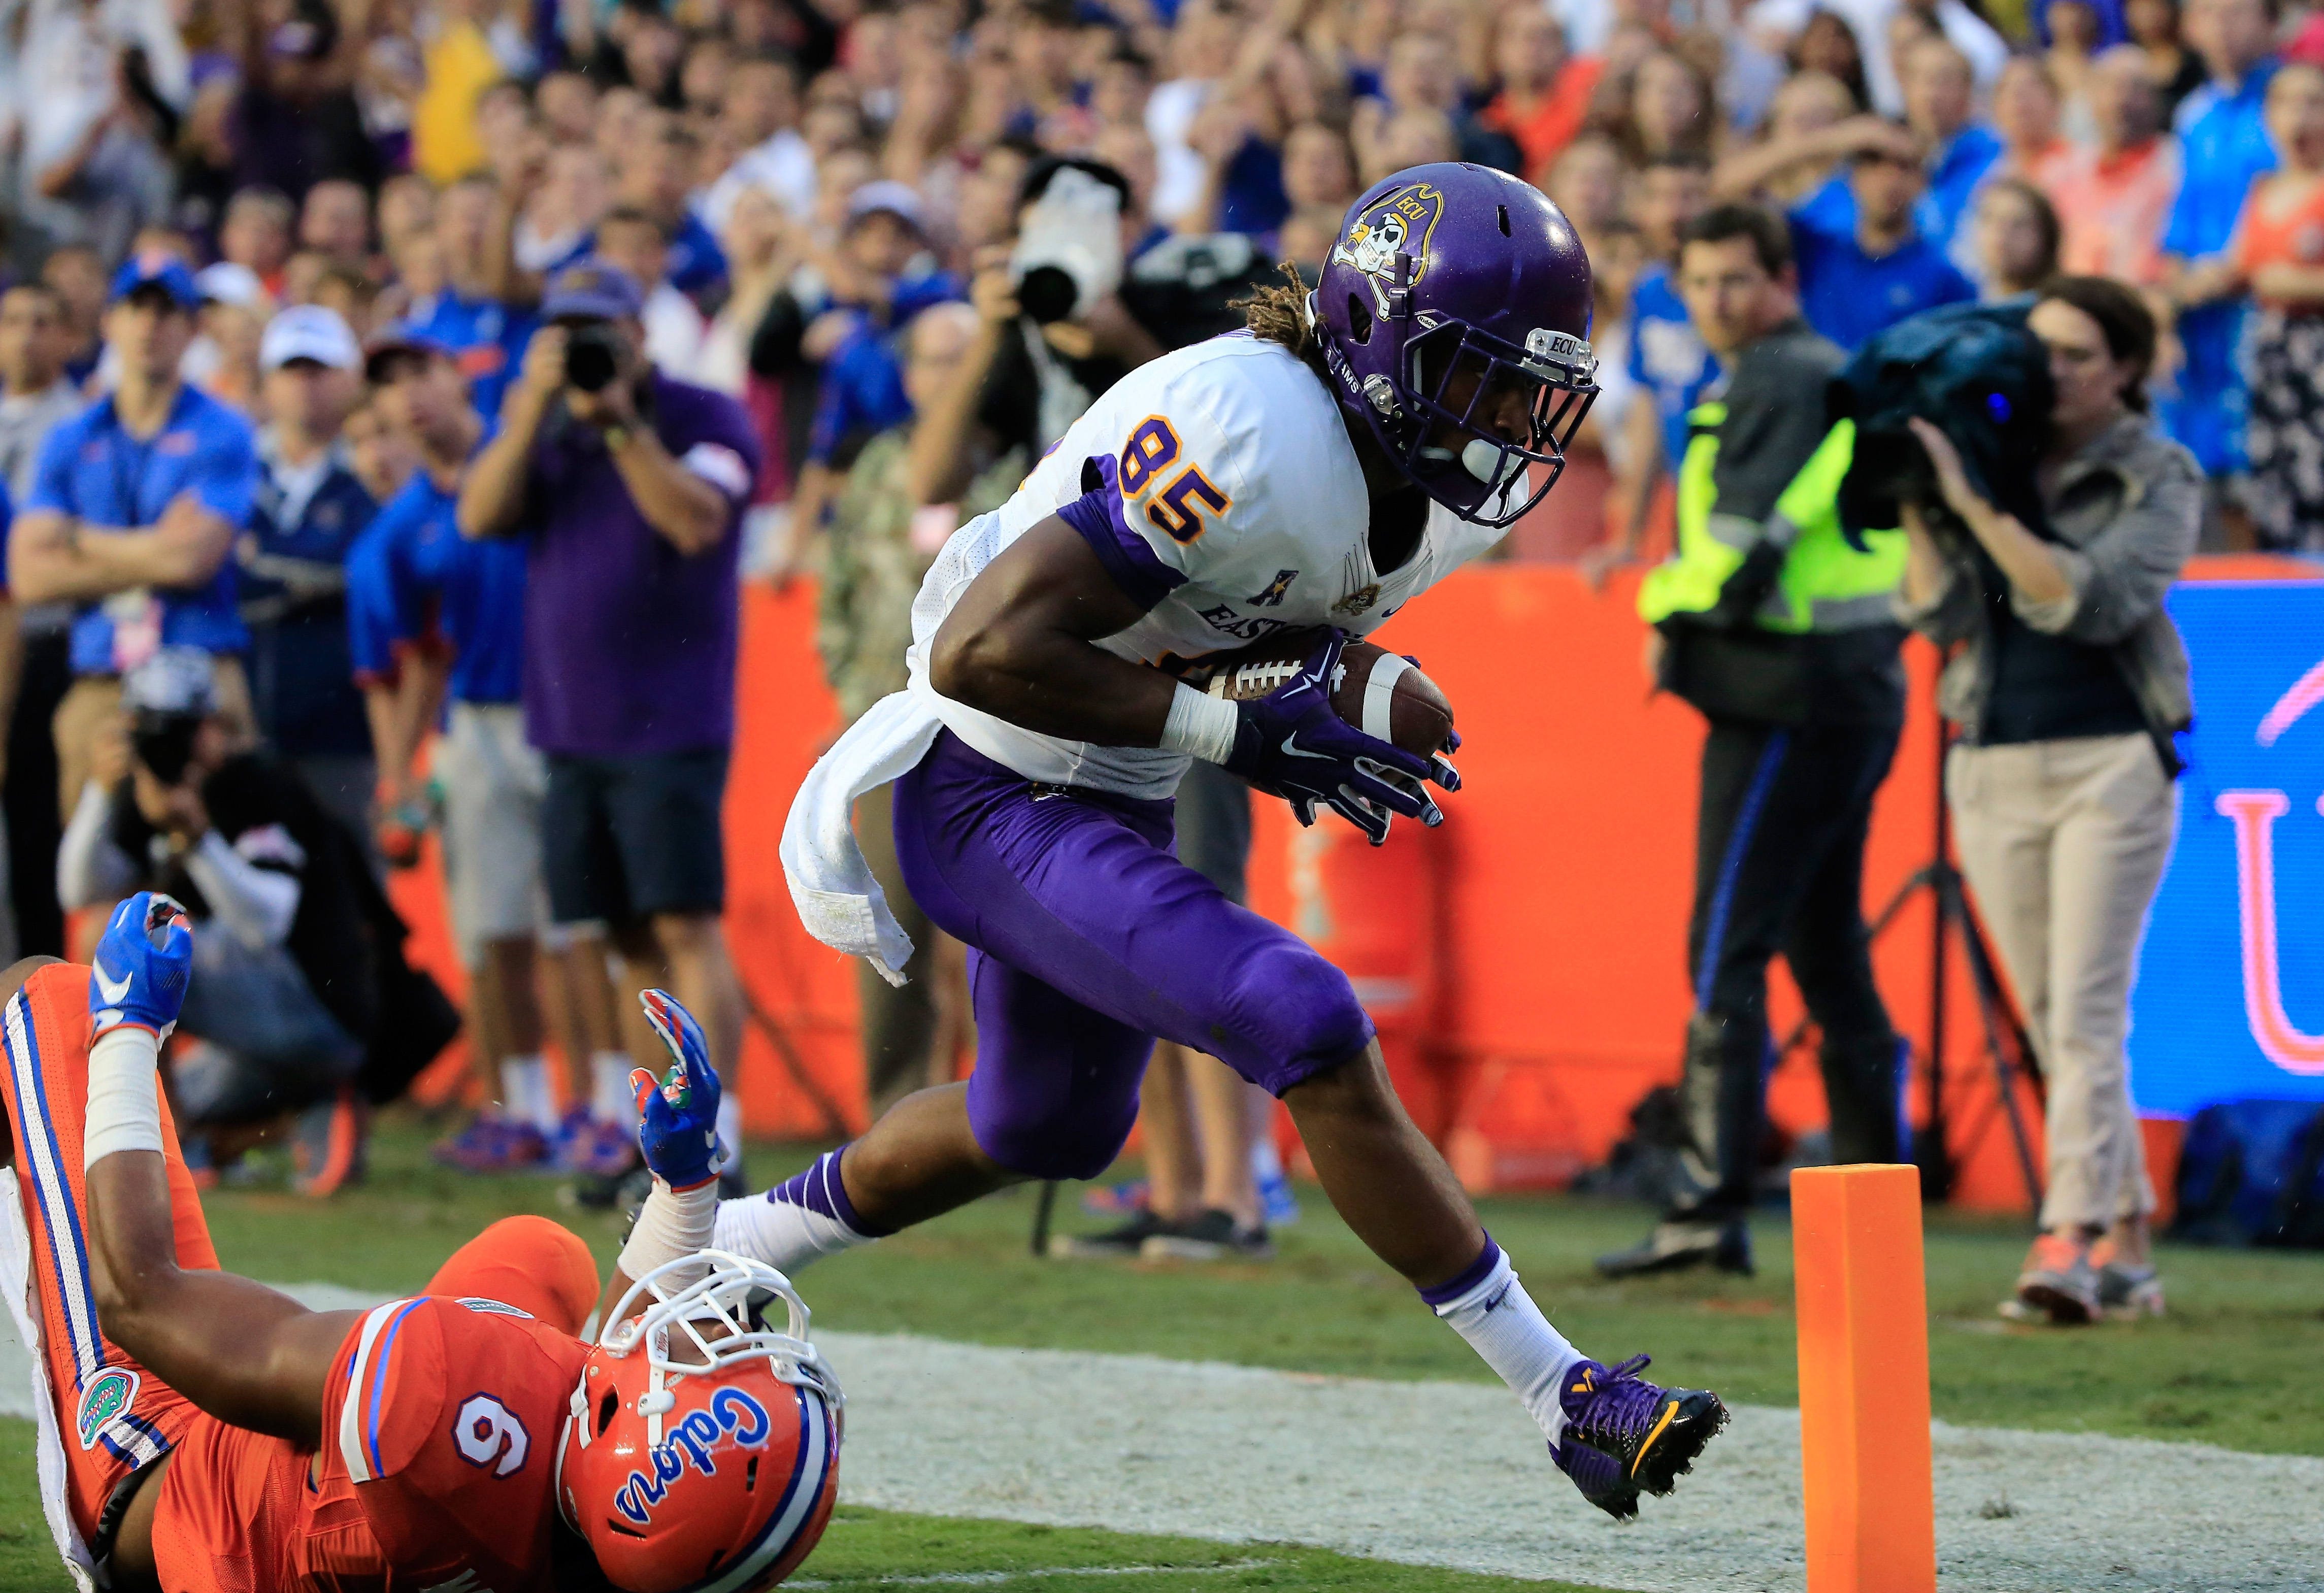 GAINESVILLE, FL - SEPTEMBER 12:  Davon Grayson #85 of the East Carolina Pirates crosses the goal line for a touchdown against Quincy Wilson #6 of the Florida Gators during the game at Ben Hill Griffin Stadium on September 12, 2015 in Gainesville, Florida.  (Photo by Sam Greenwood/Getty Images)